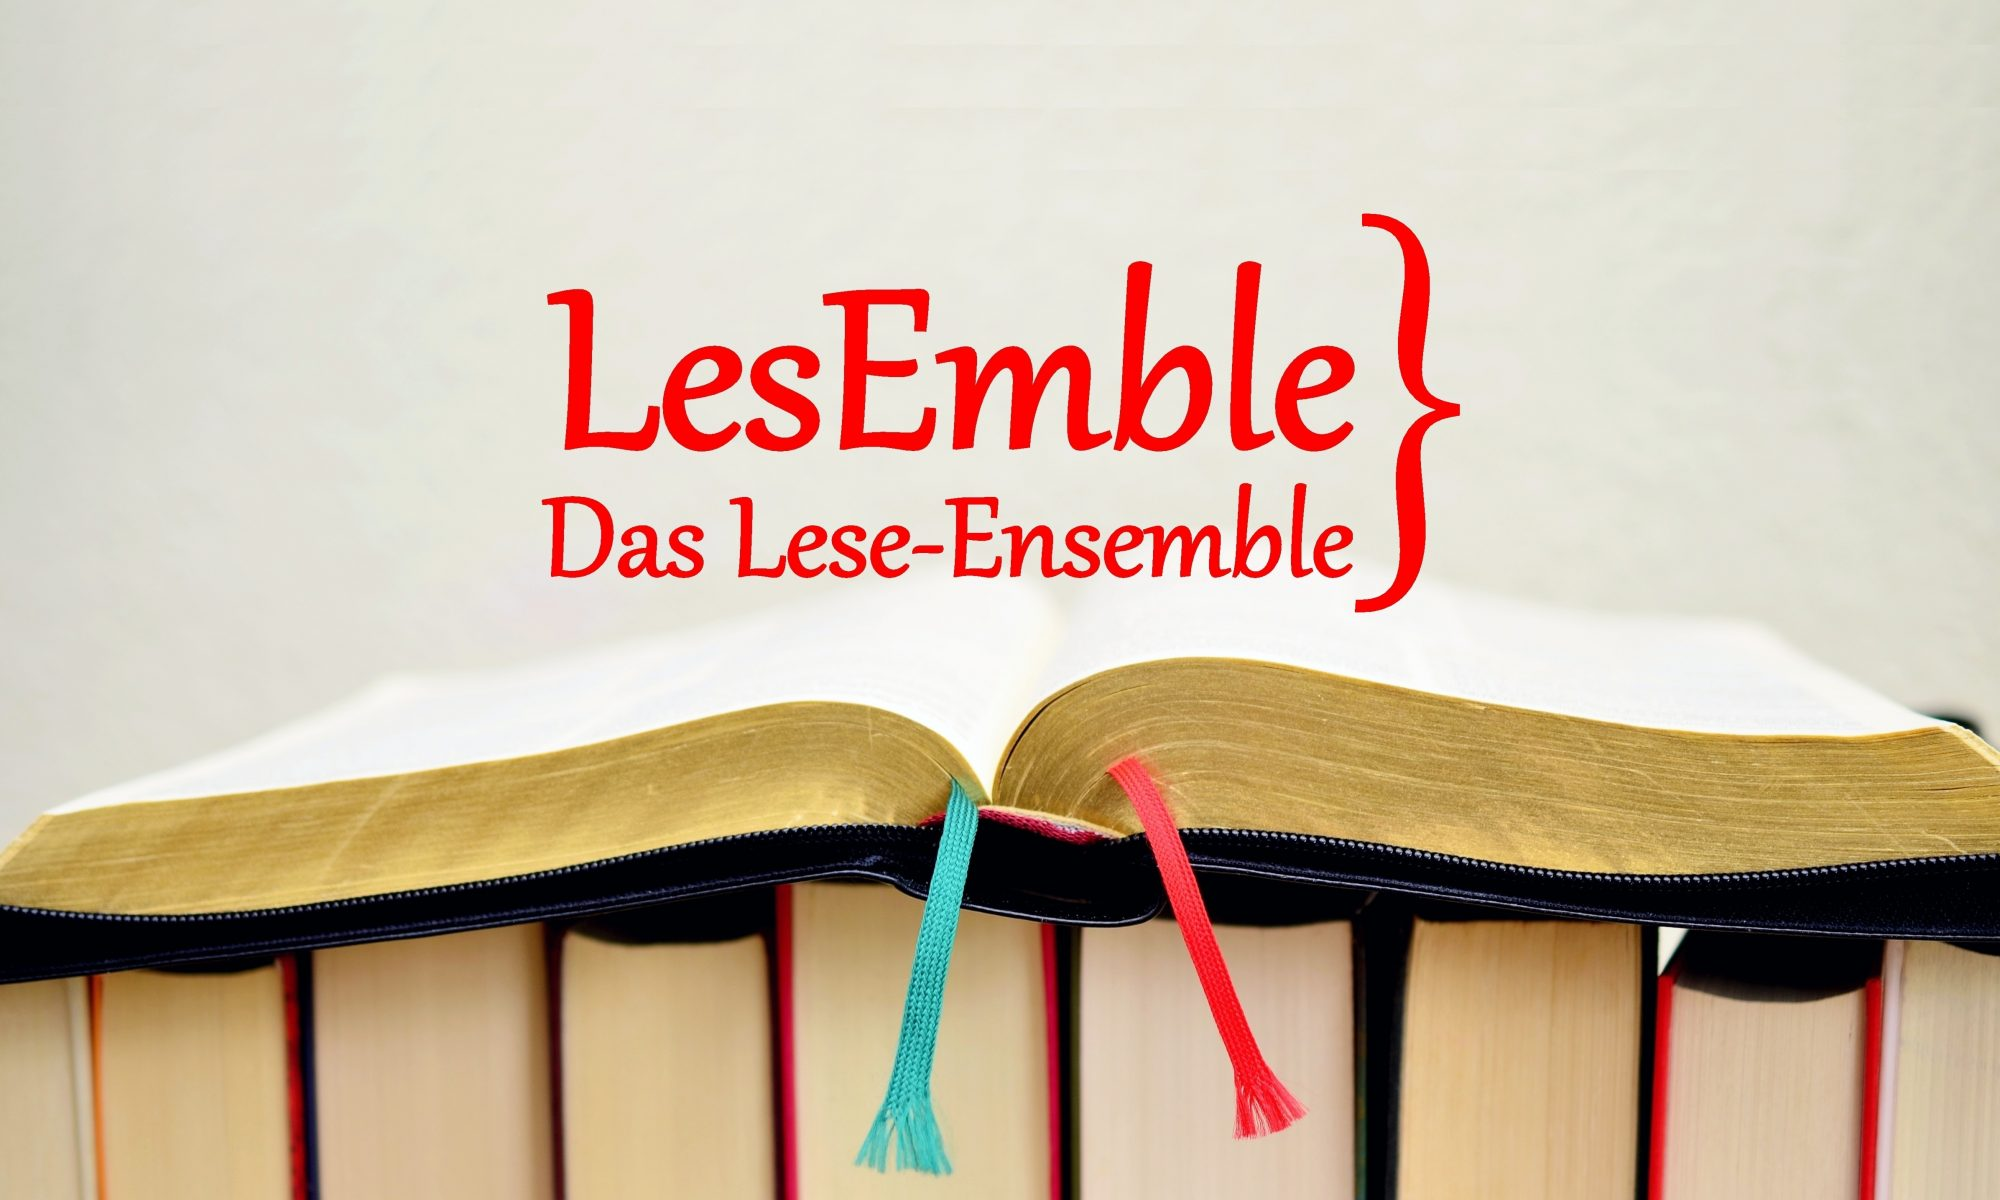 LesEmble} Das Lese-Ensemble